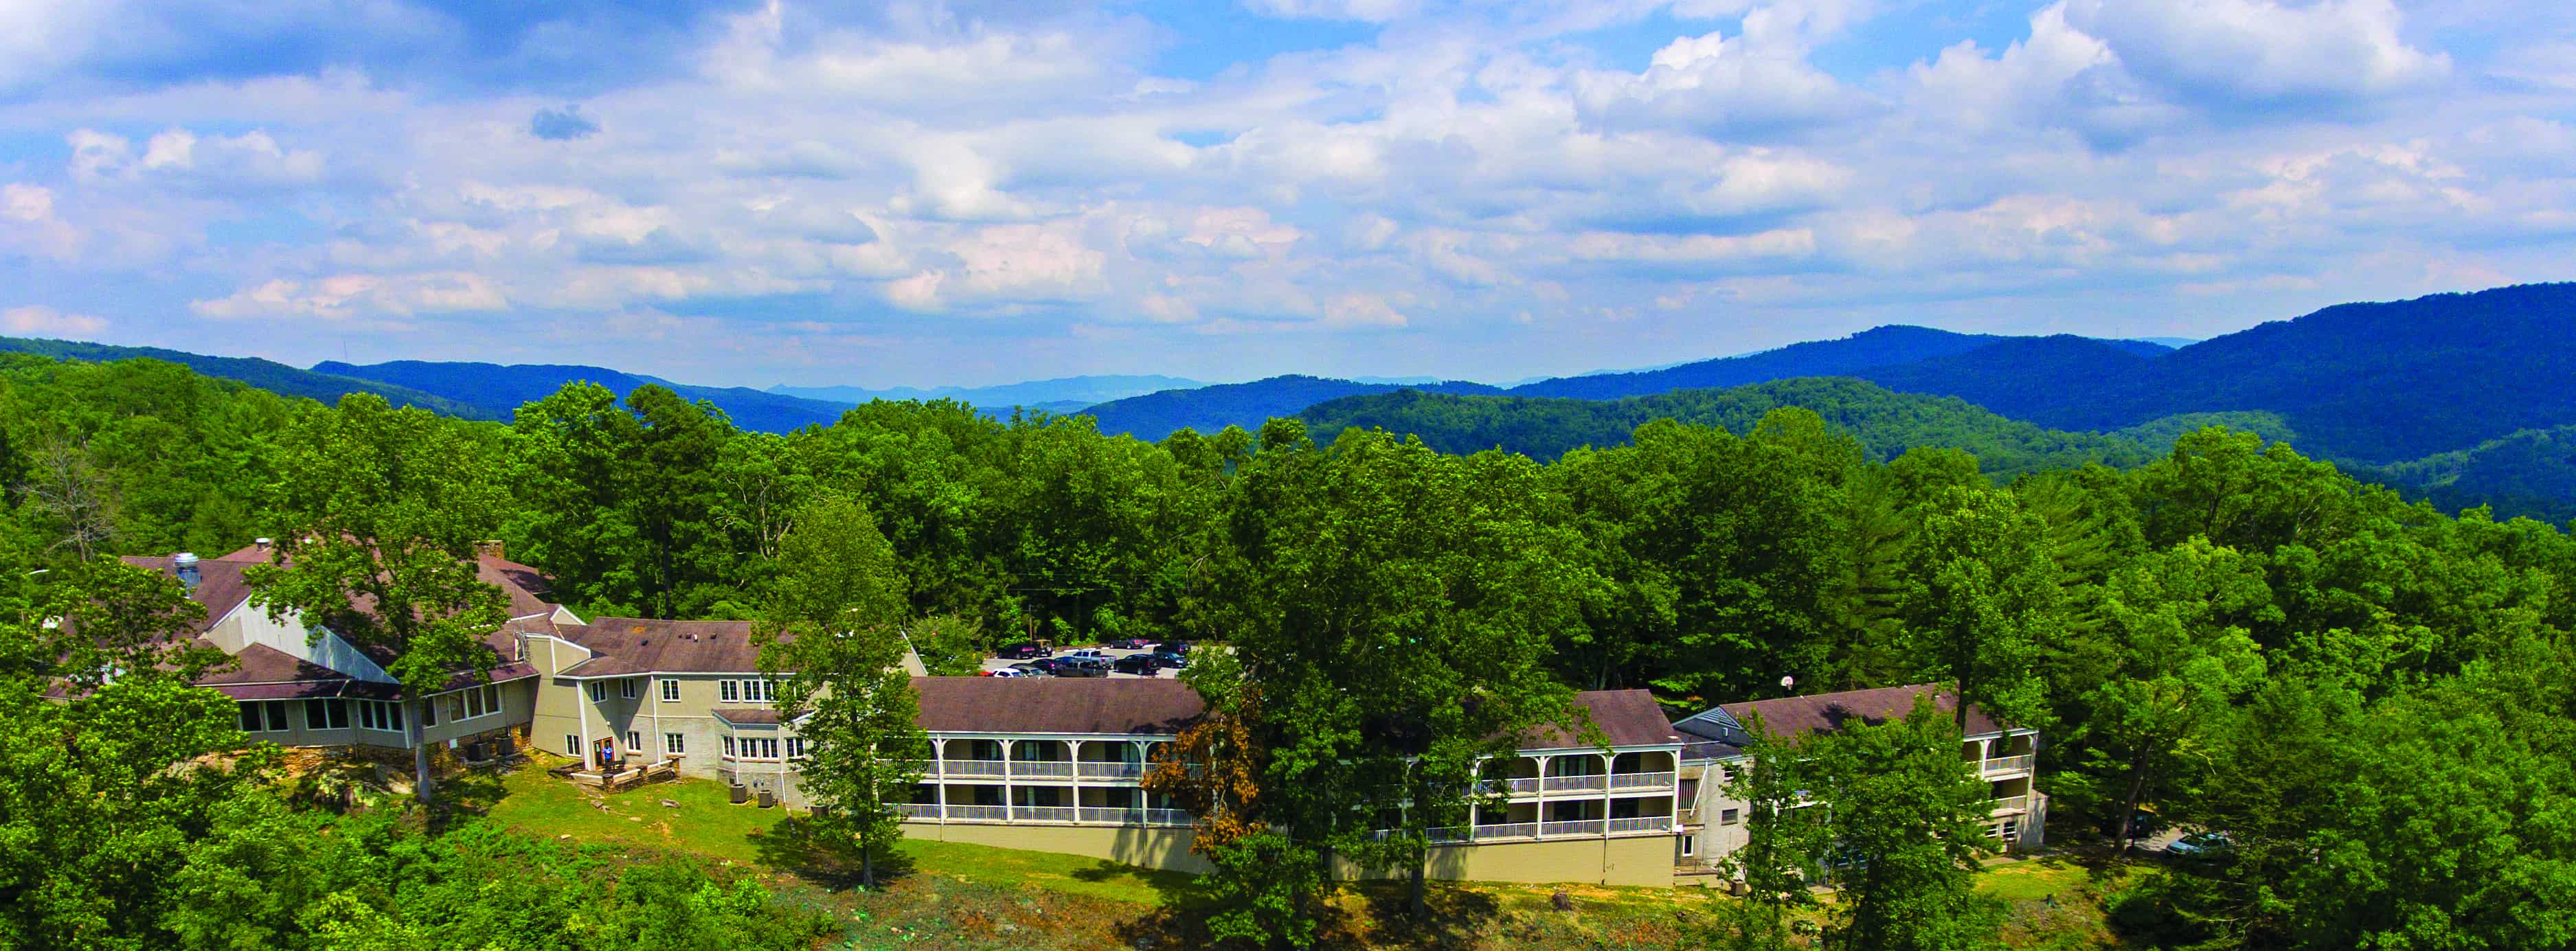 Pine Mountain lodge